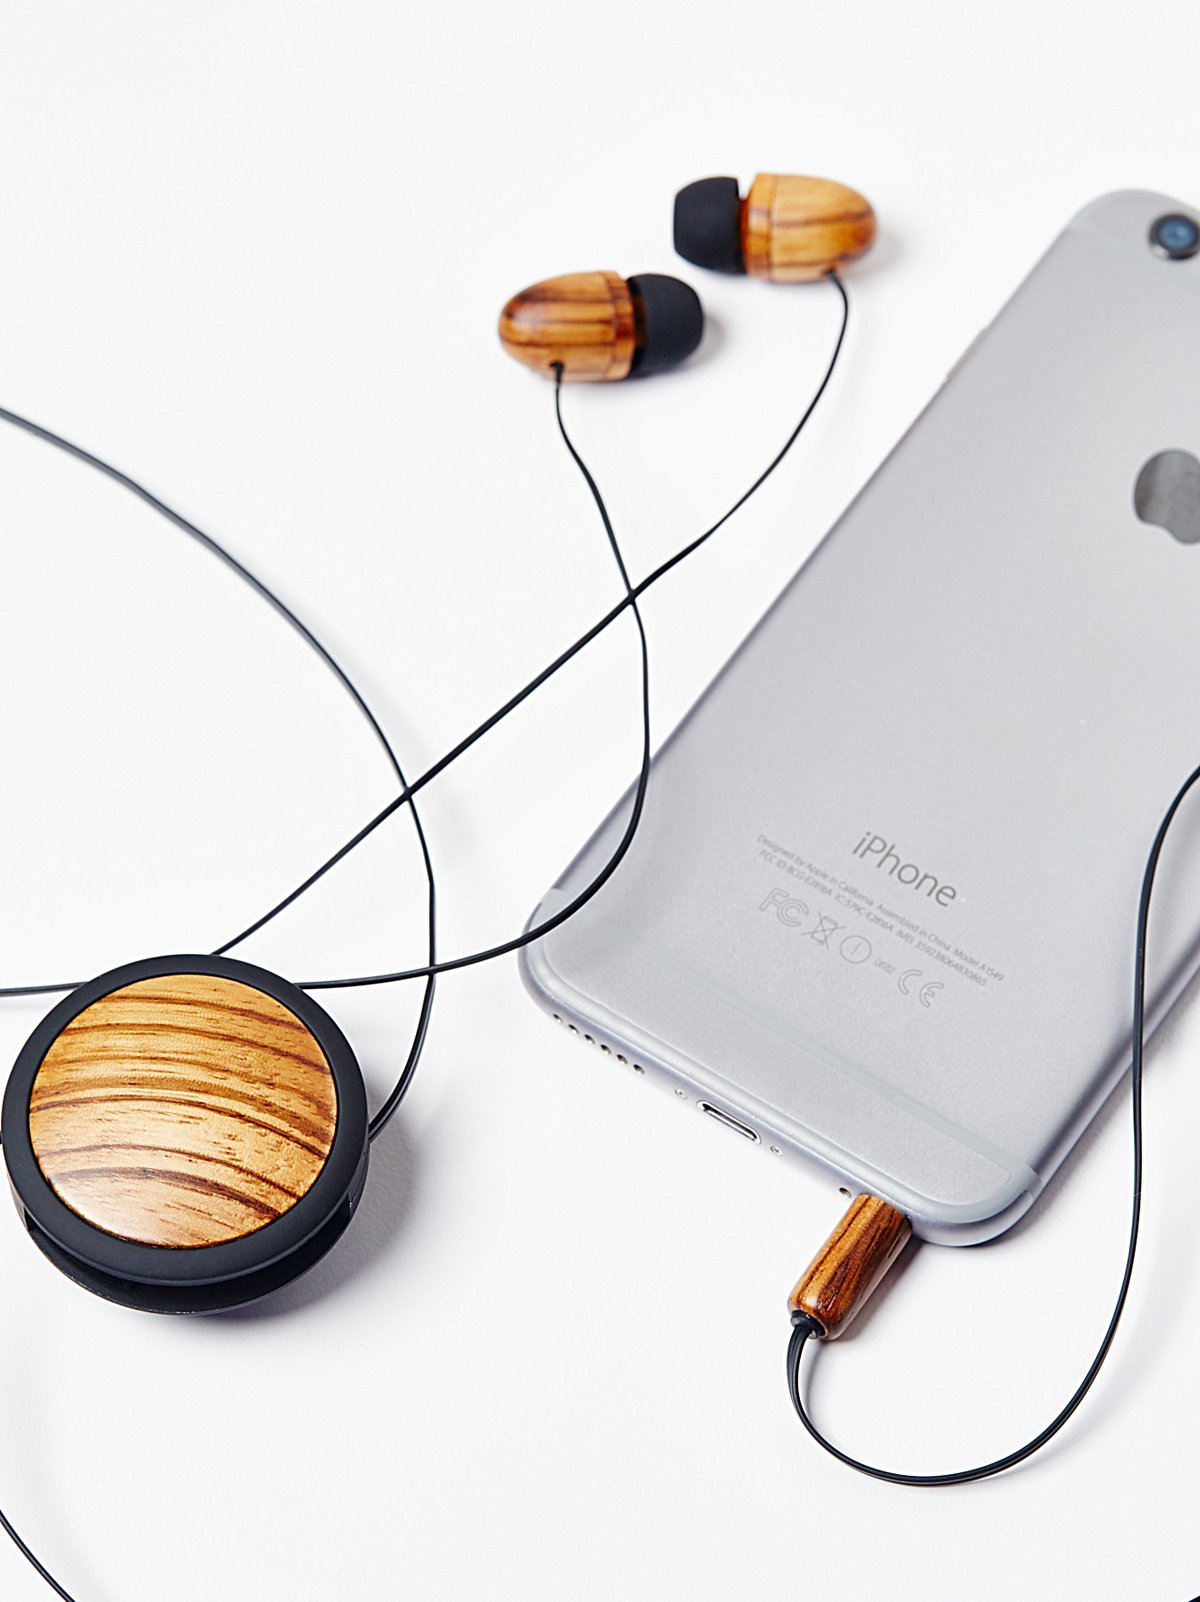 Retractable Wood Ear Buds